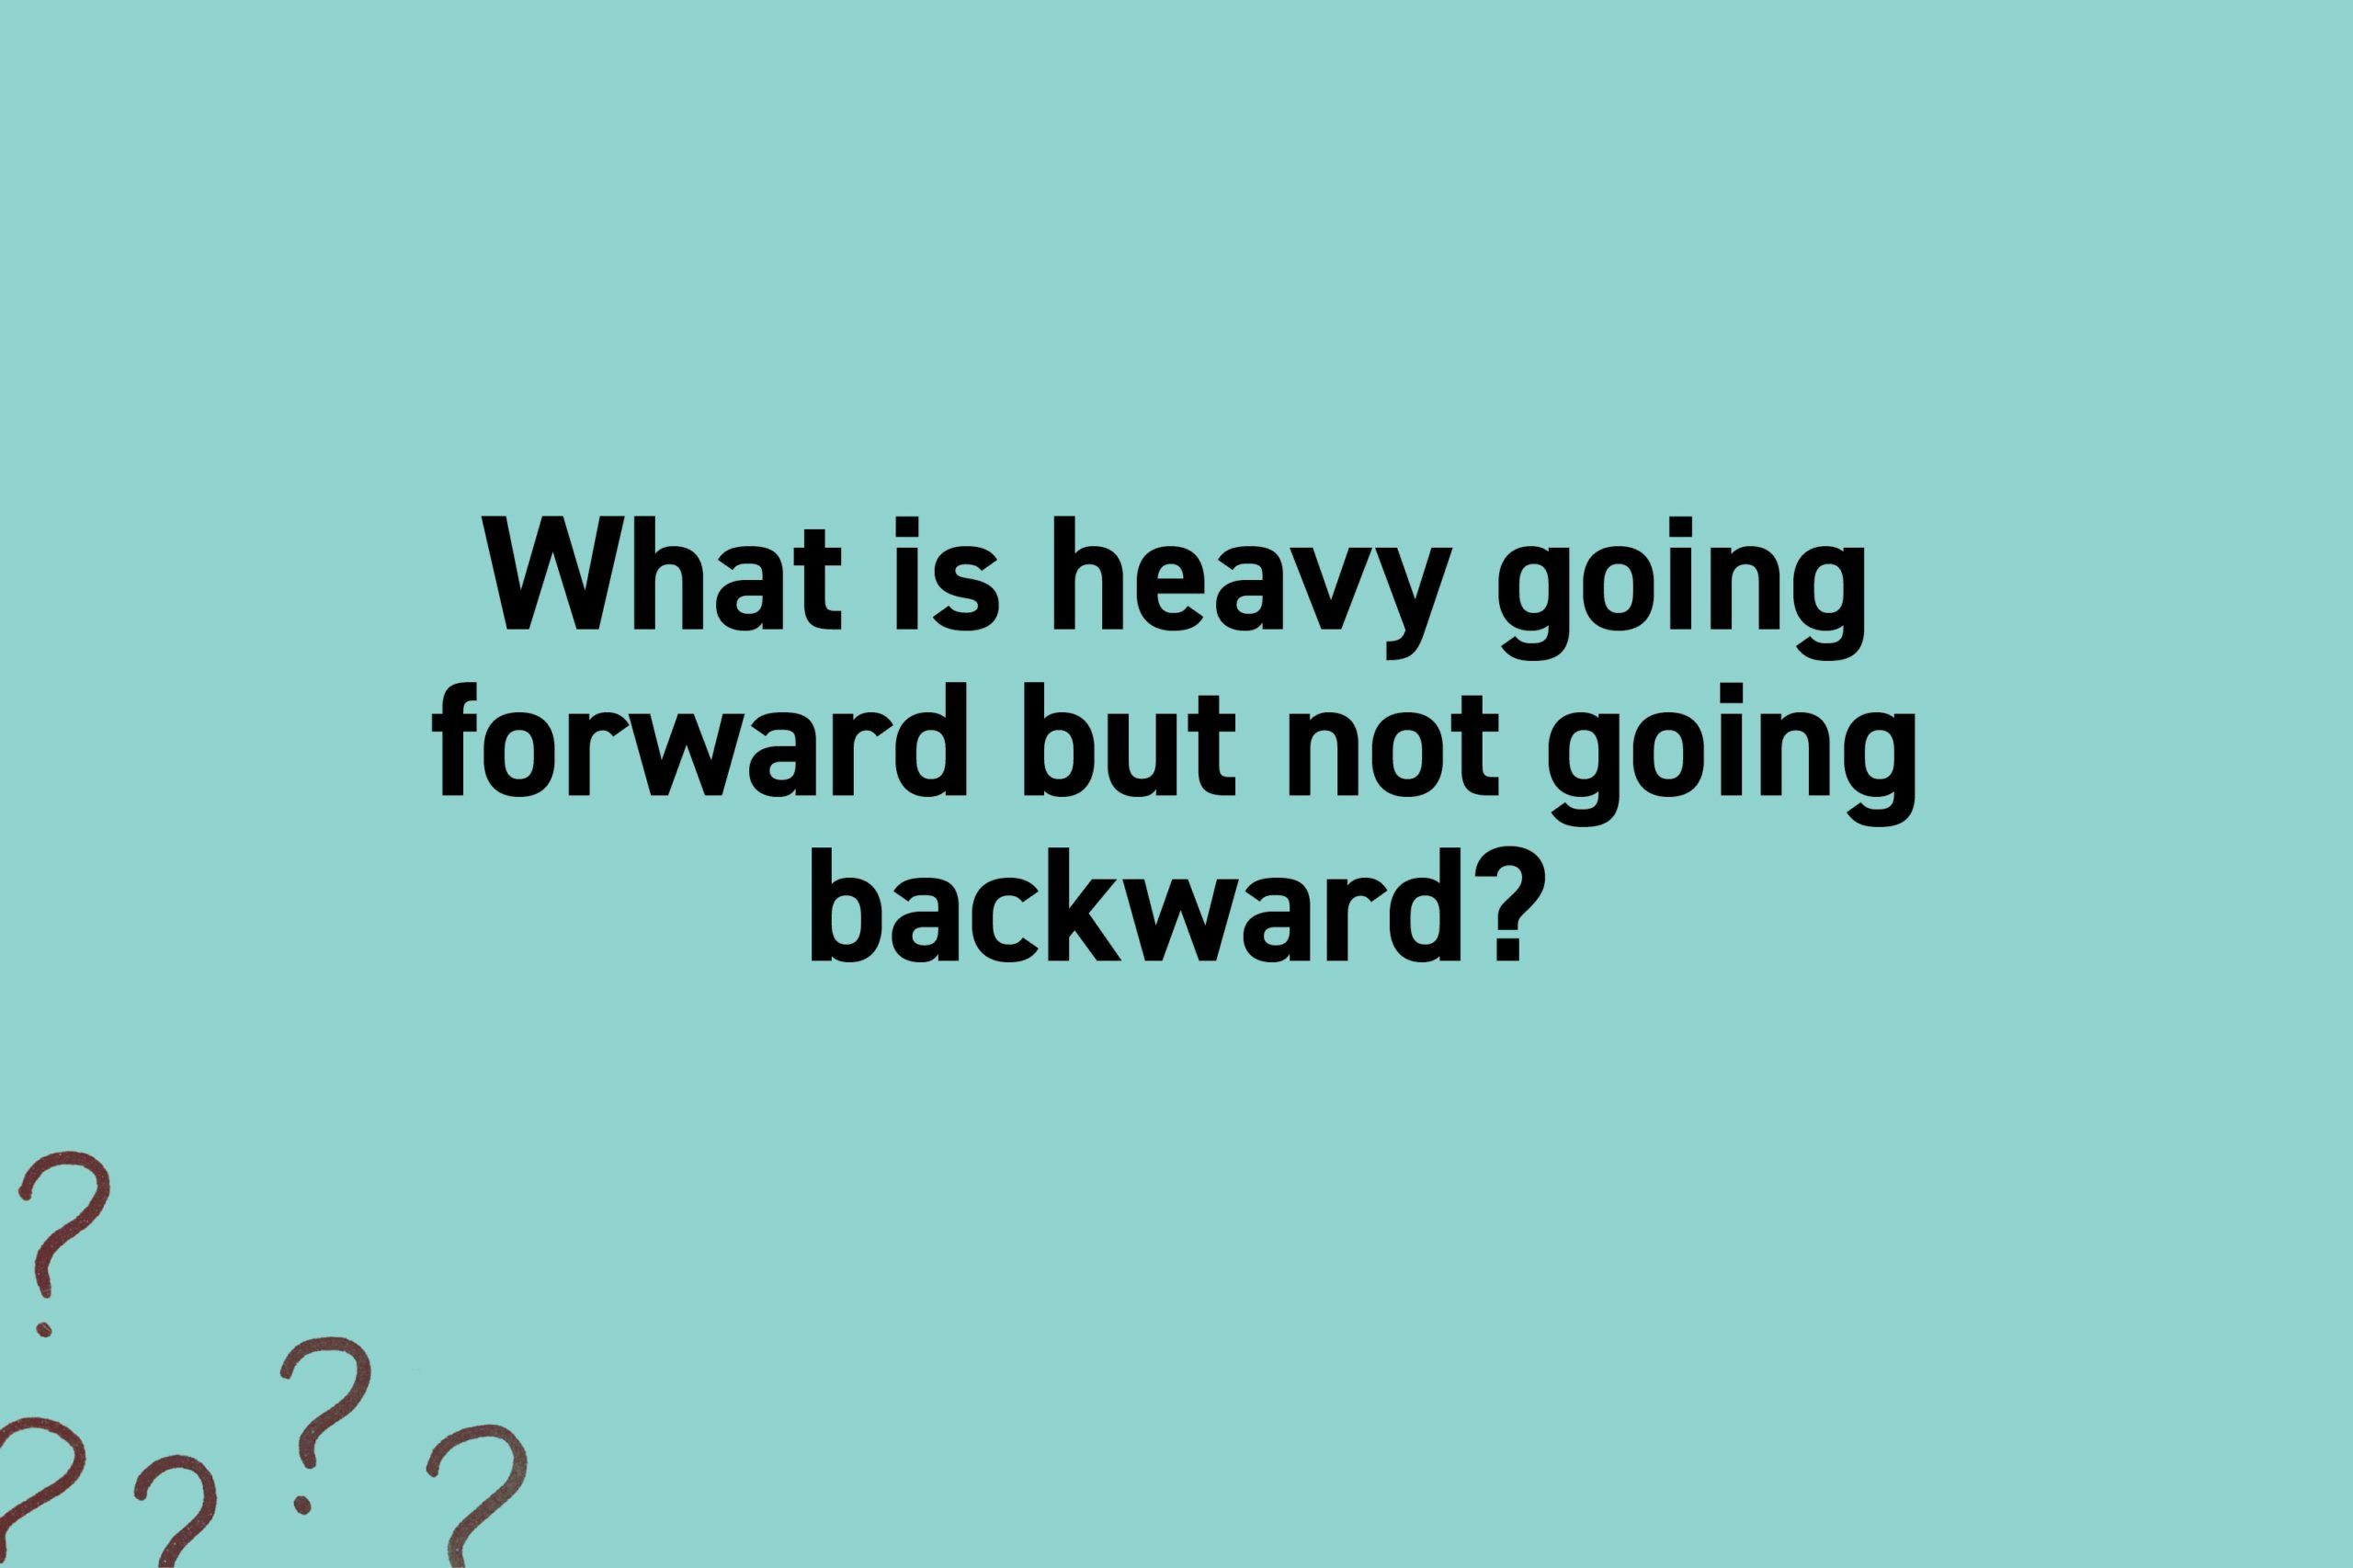 What is heavy going forward but not going backward?